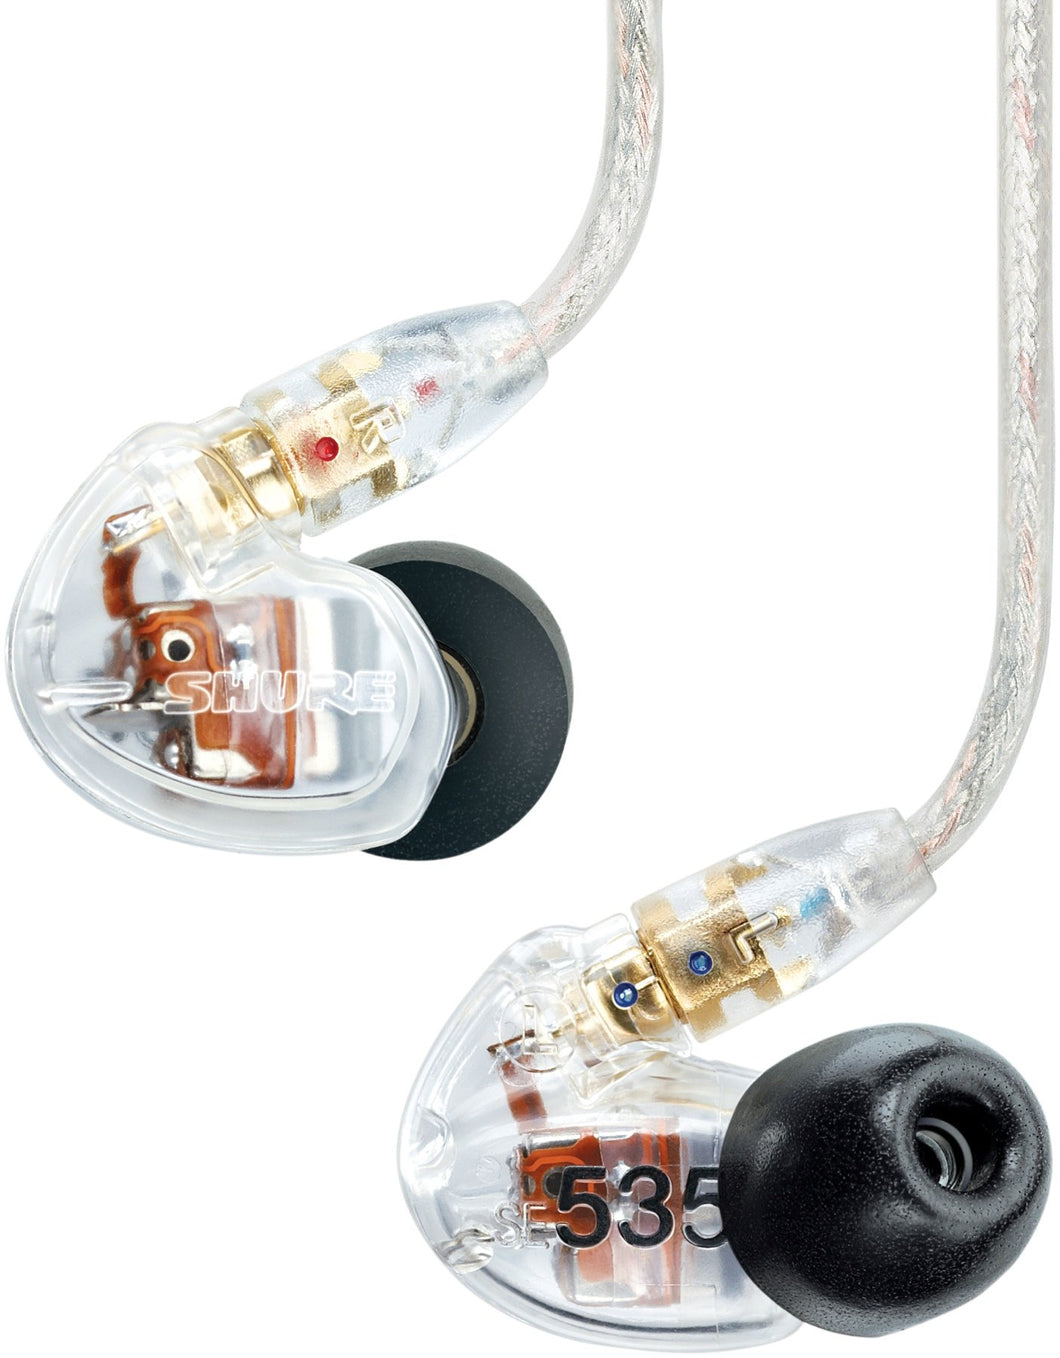 Shure SE535 - Sound Isolating Earphones